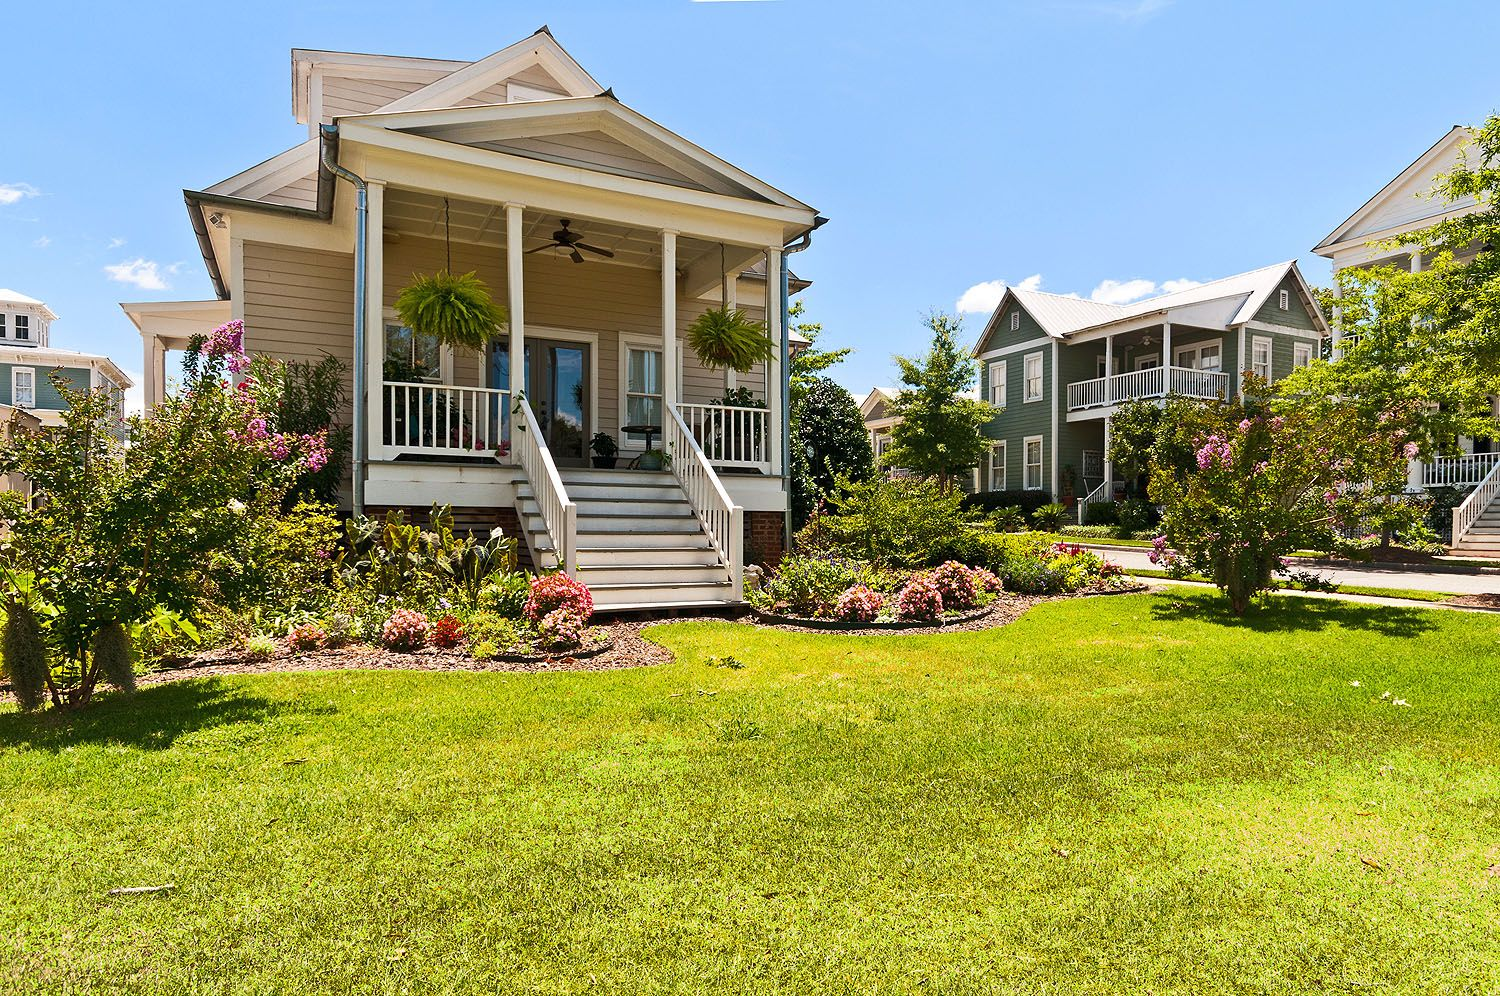 Beautiful Cottage At The Waters In Pike Road Al Thewatersal Com Pike Road Cottage Real Estate